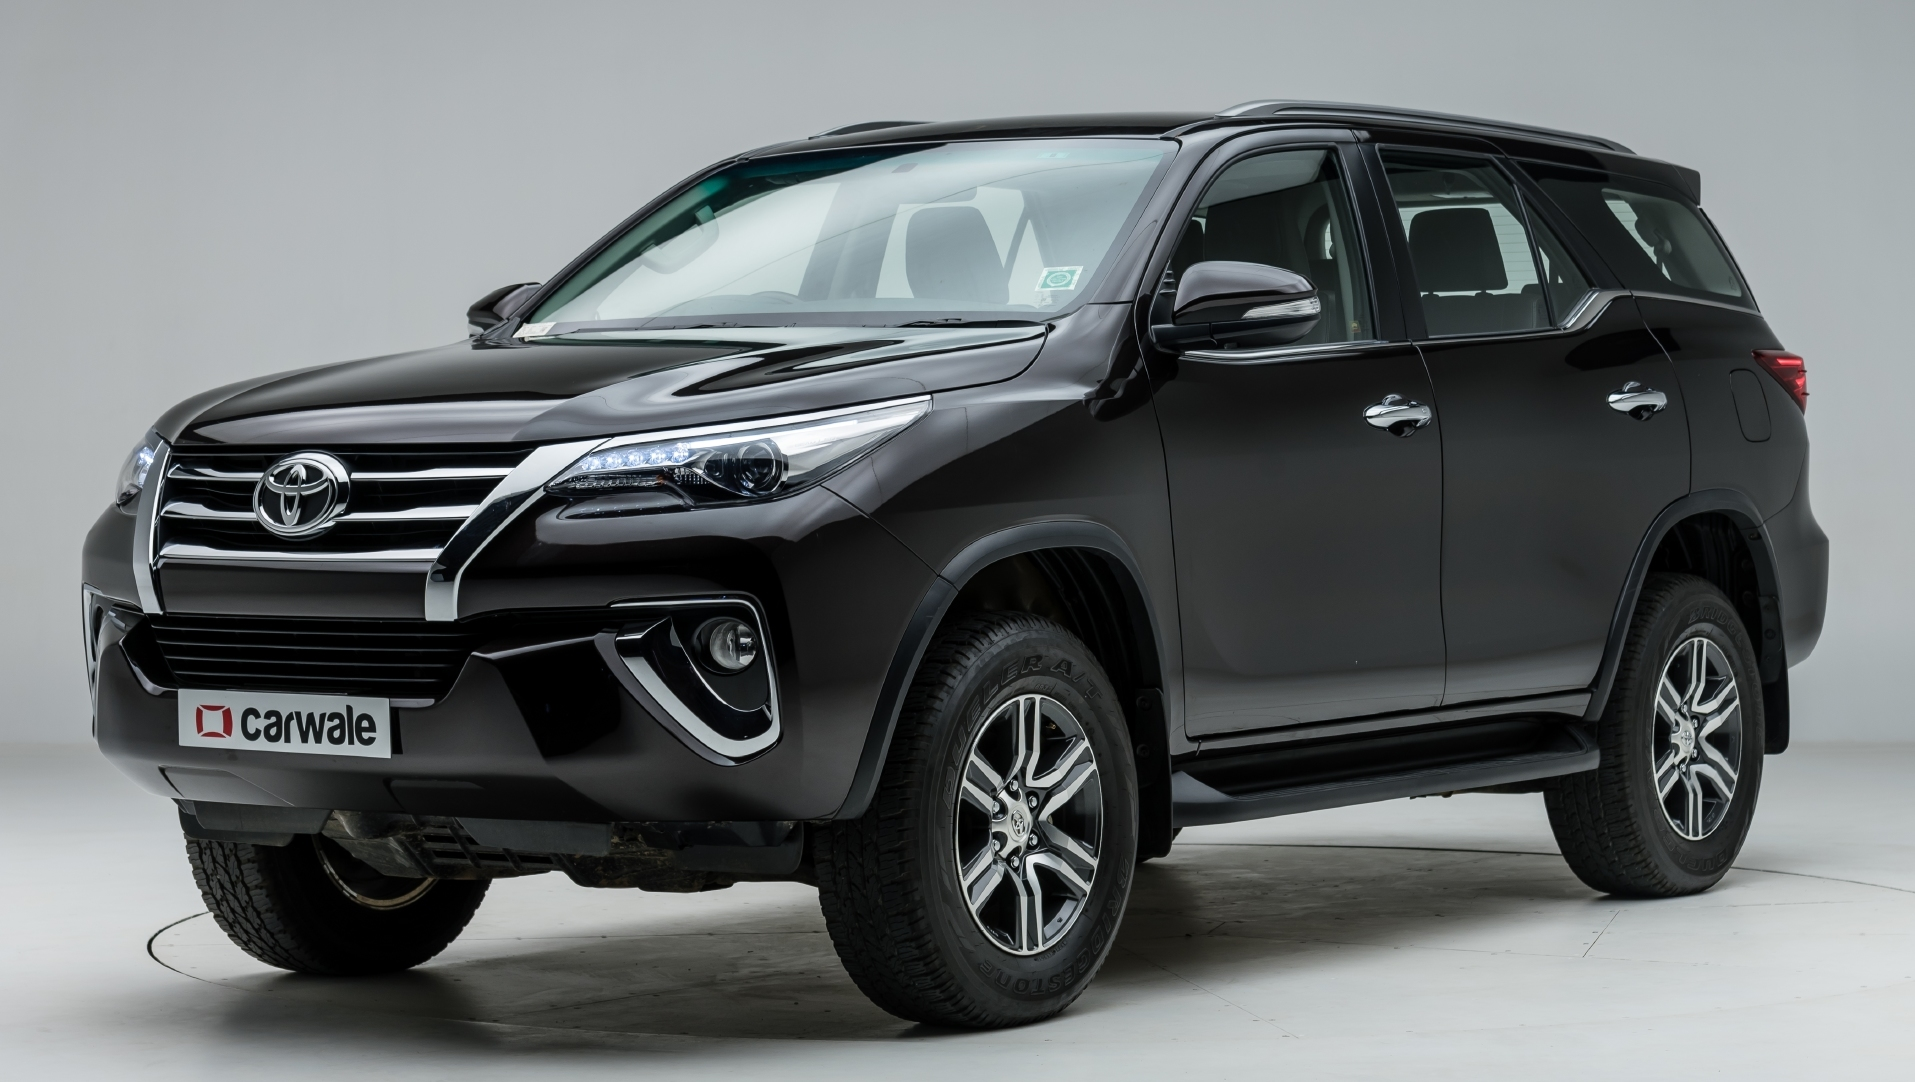 Toyota Fortuner Images Interior Exterior Photo Gallery   CarWale 1915x1082